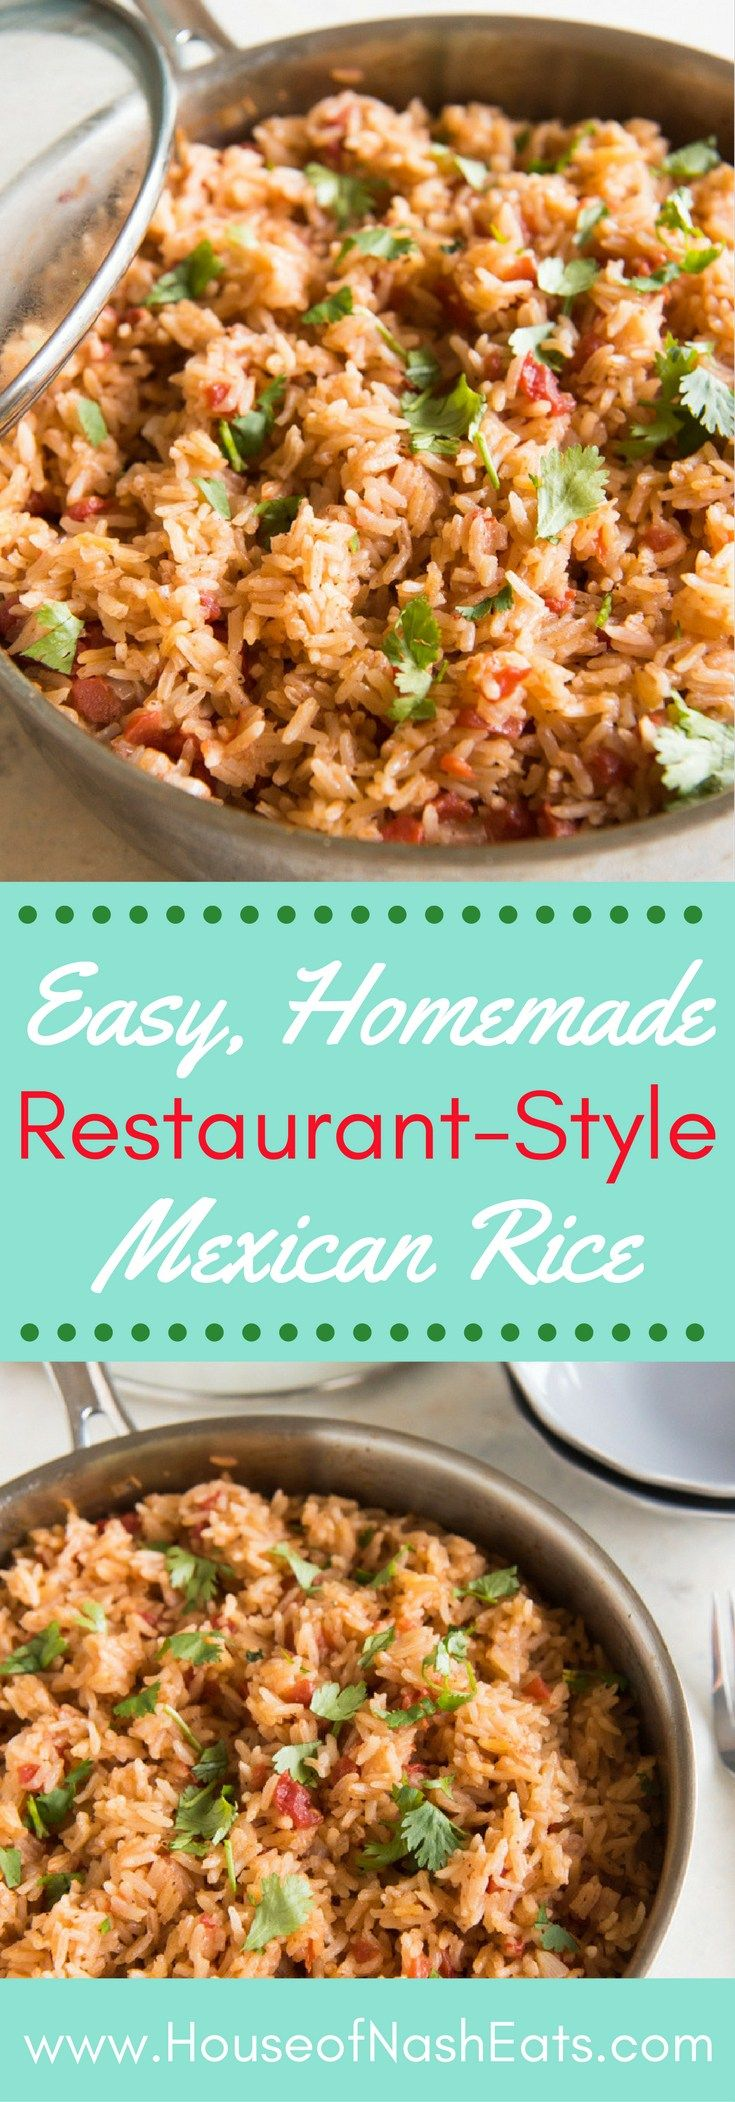 8240c520522e2219a48fc0d36254a3a8 - Better Homes And Gardens Spanish Rice Recipe